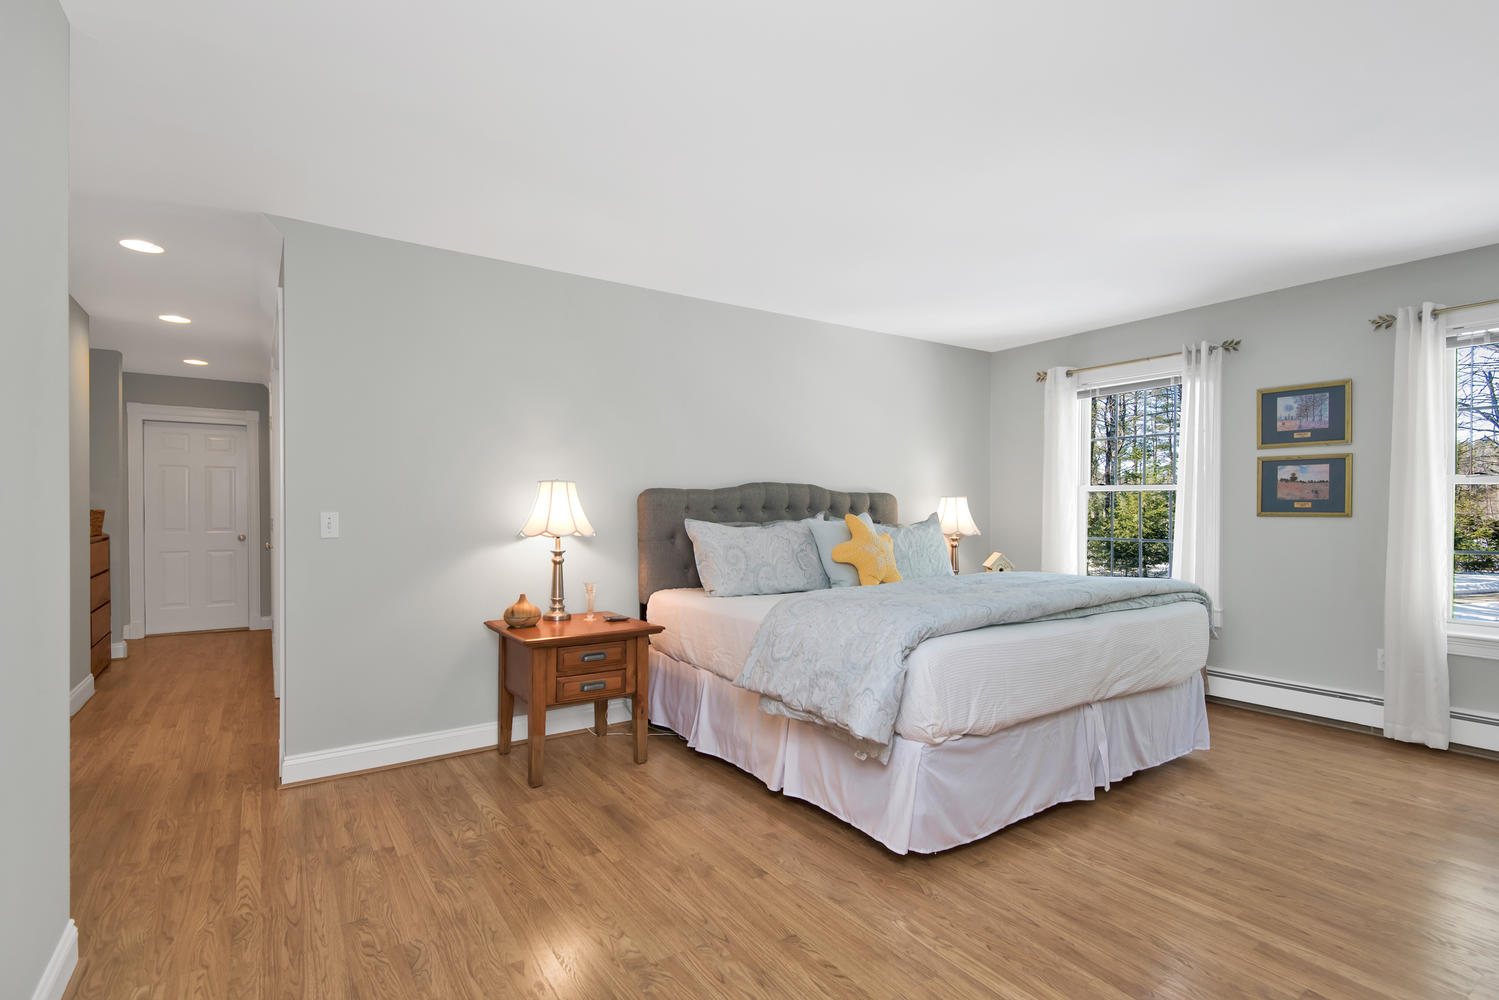 26 Titcomb Field Rd North-large-033-39-Master Bedroom-1499x1000-72dpi.jpg